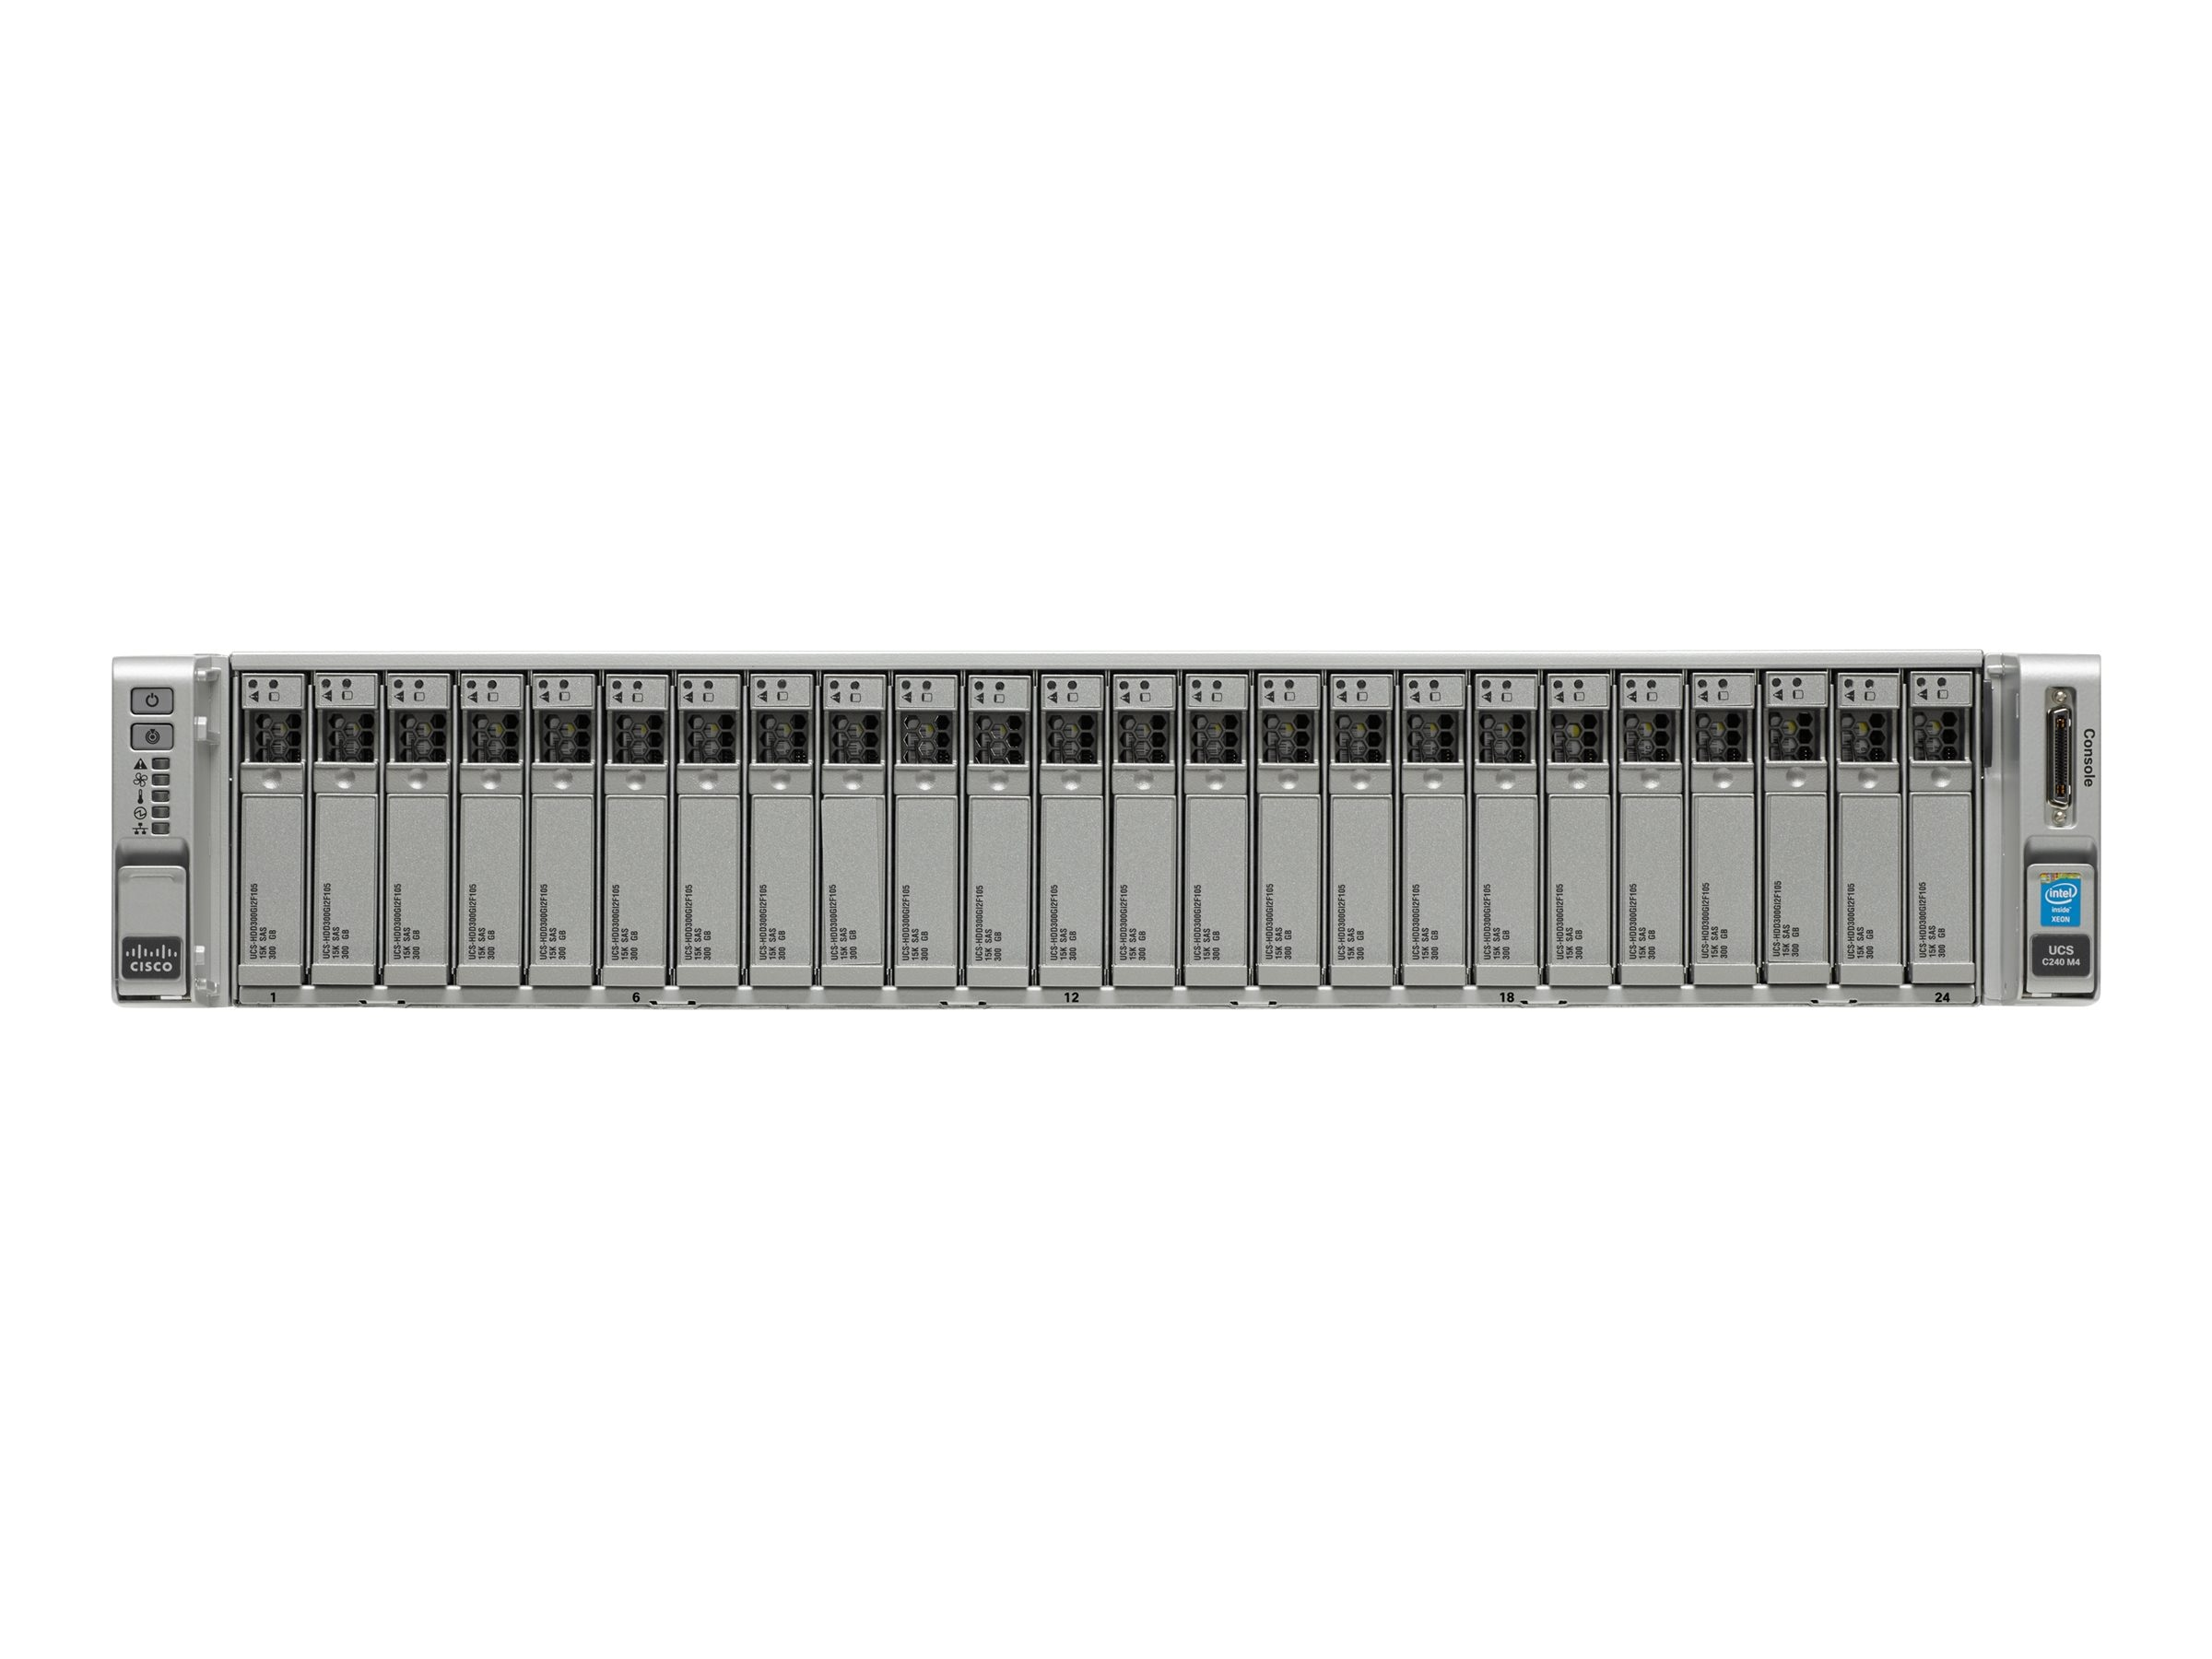 Cisco UCS-SP-C240M4-B-S2 Image 3